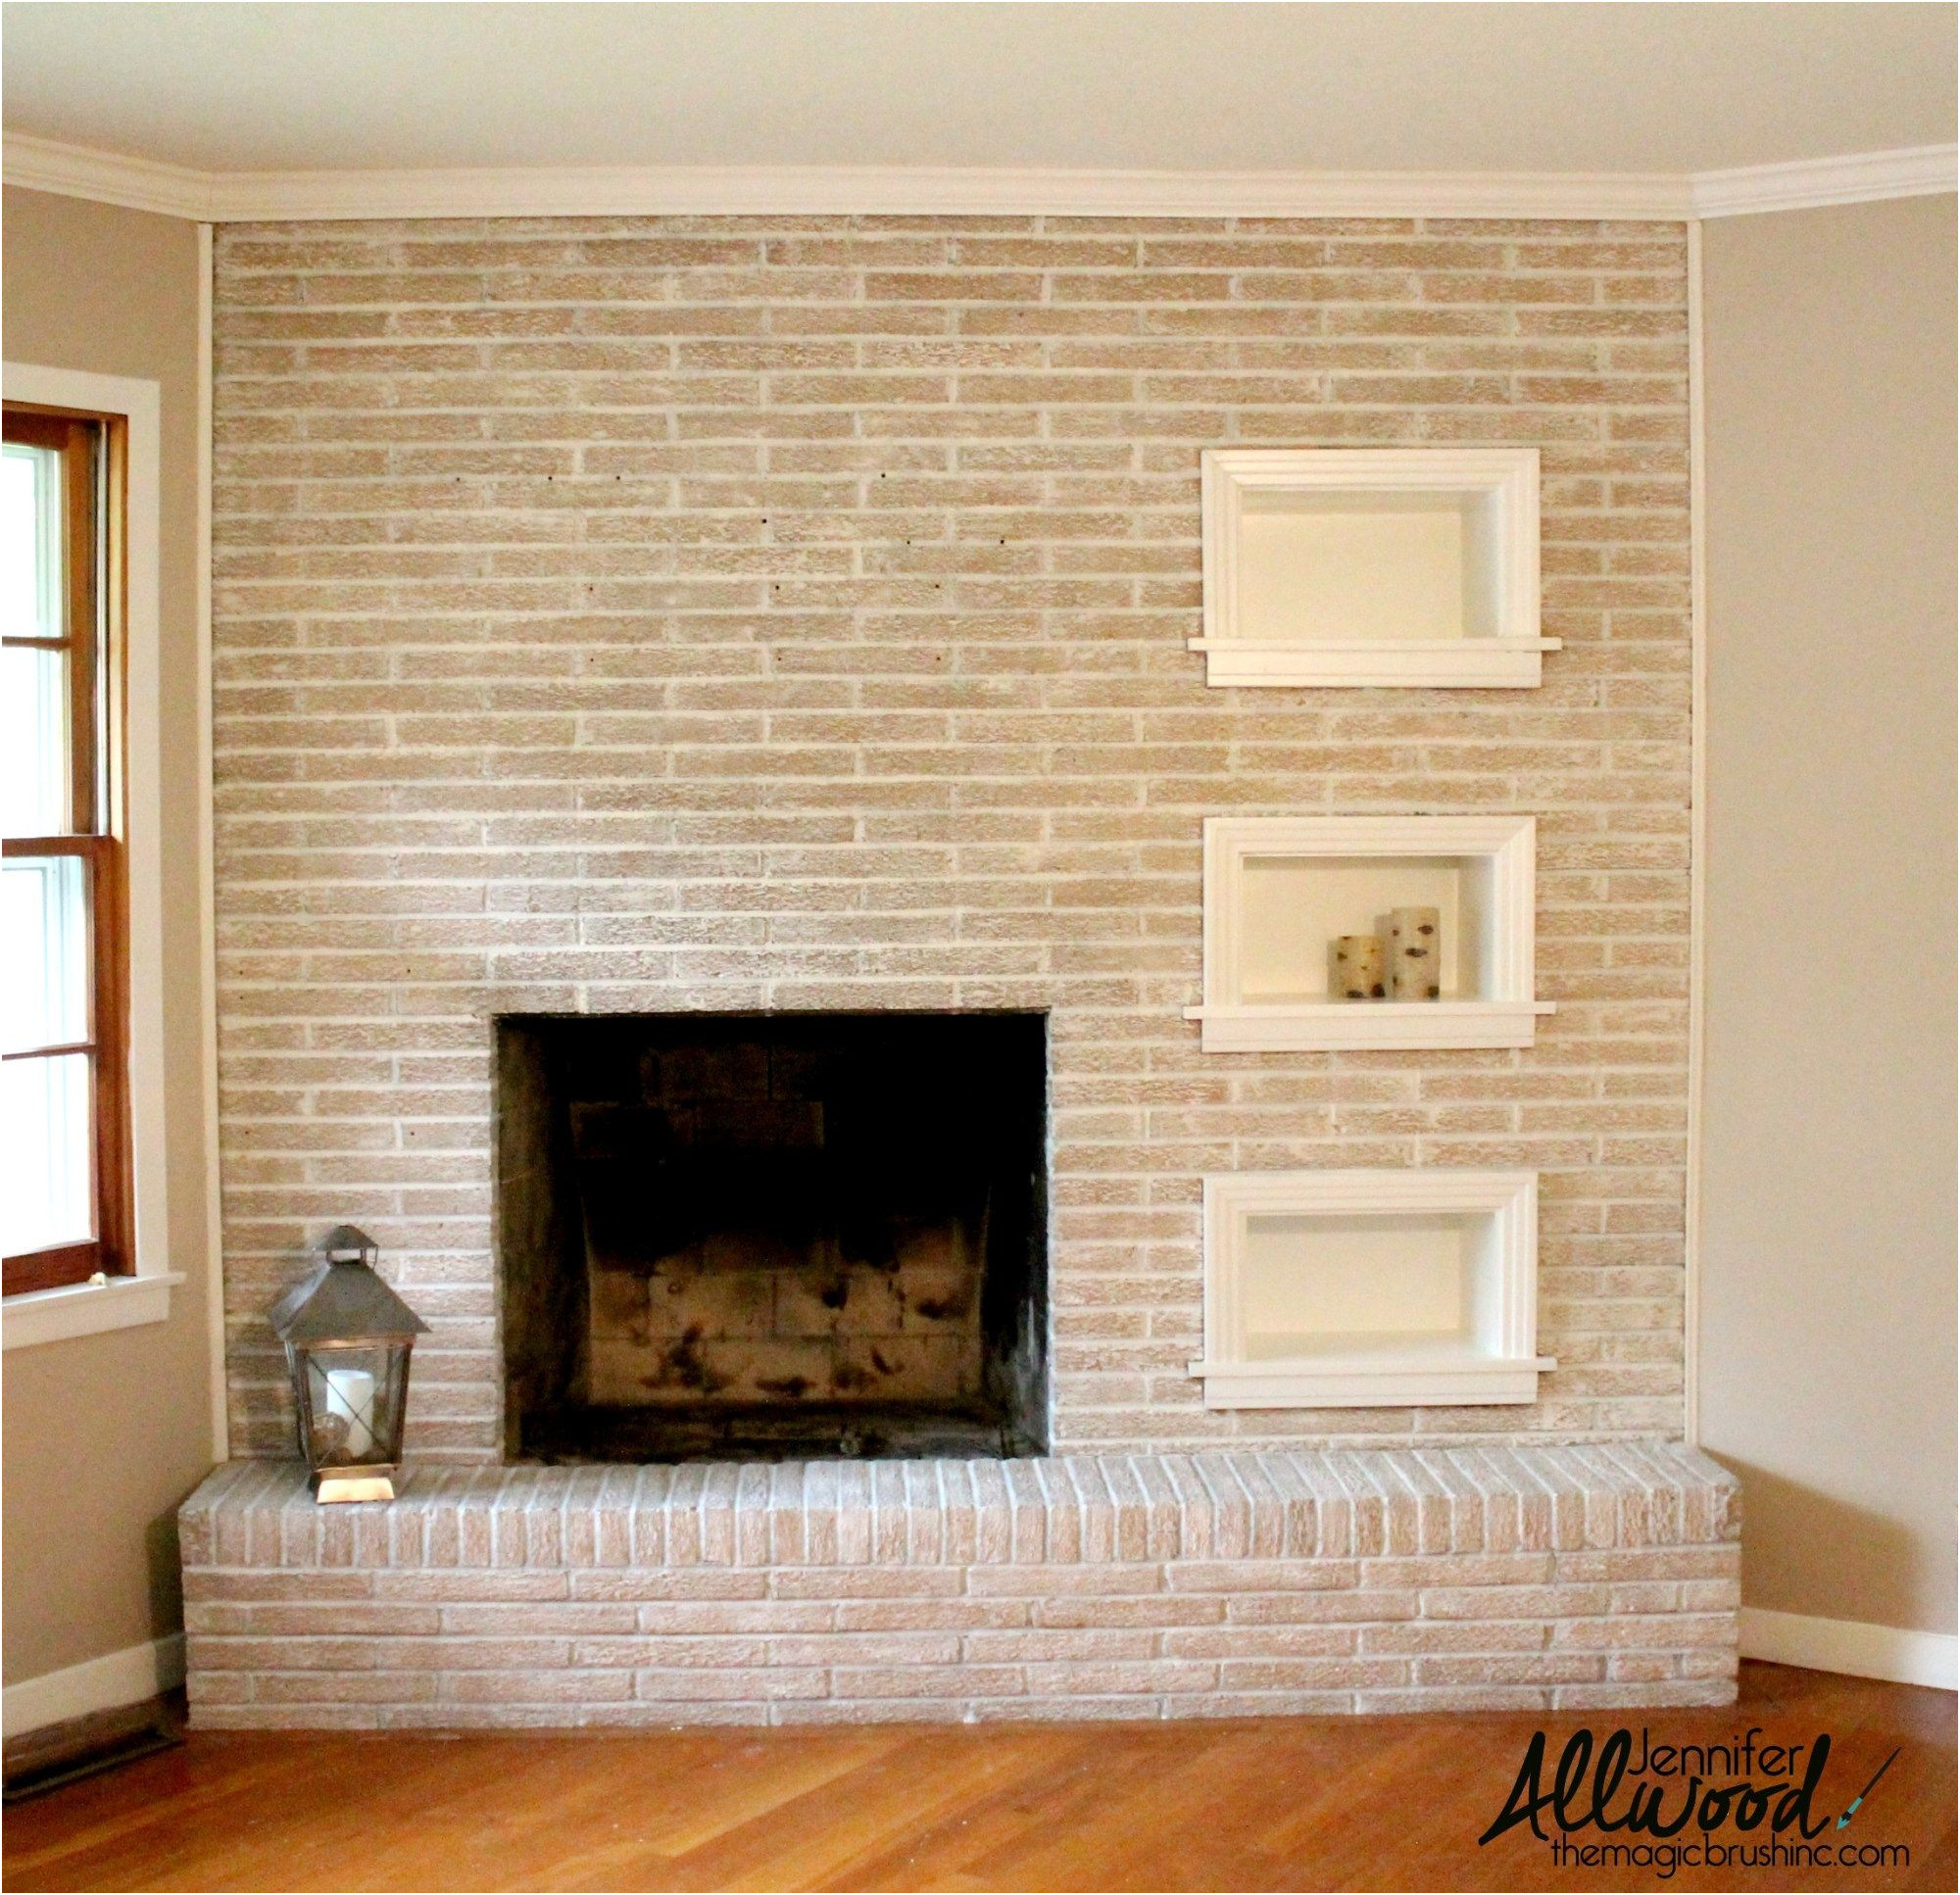 New Ideas for Painting A Brick Fireplace